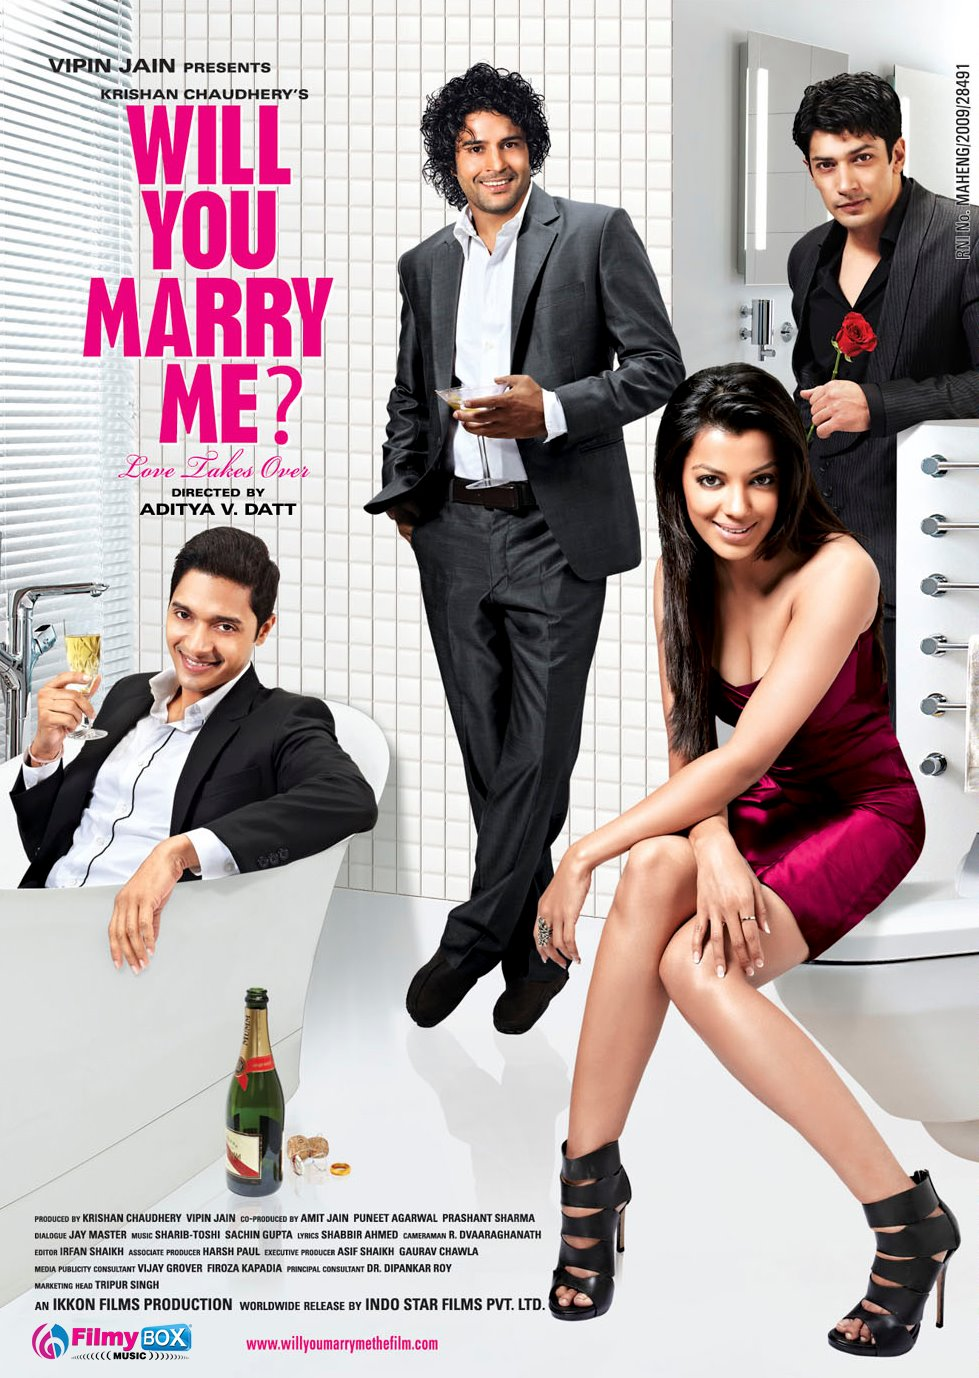 Will You Marry Me ? poster is copied from How I Met Your Mother